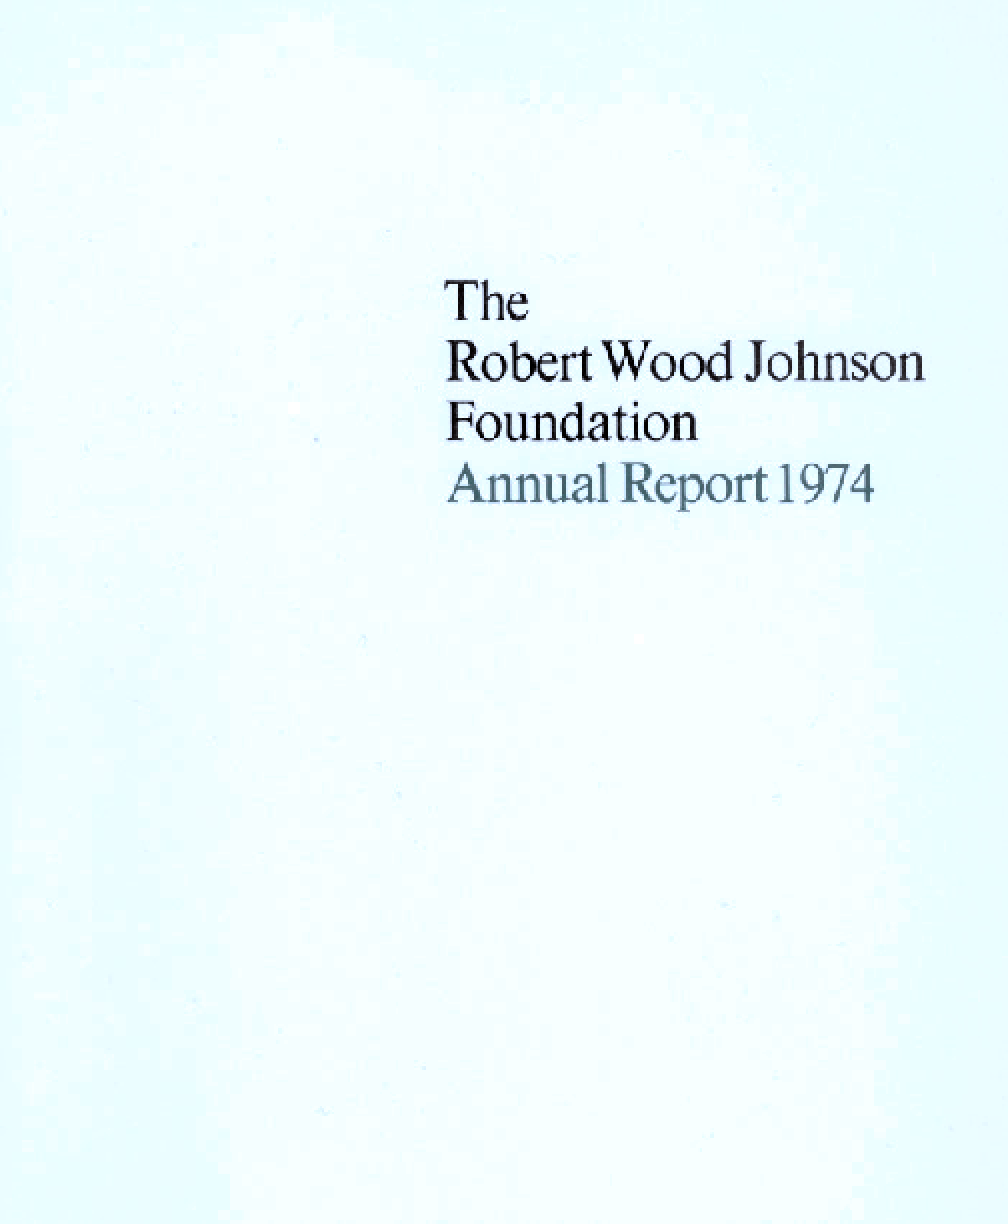 Robert Wood Johnson Foundation - 1974 Annual Report